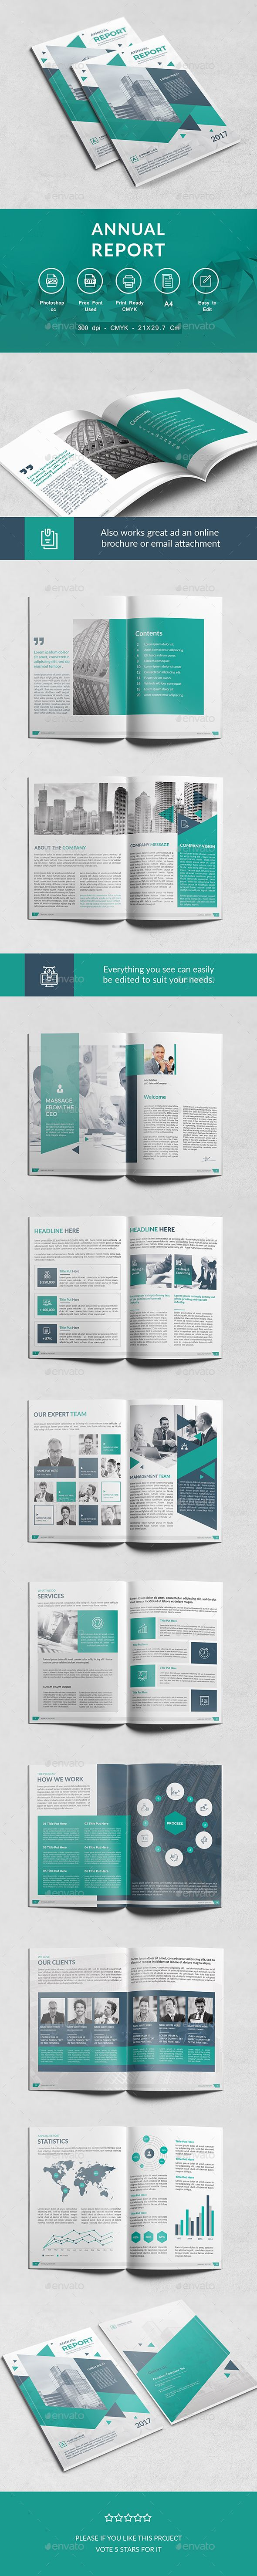 best ideas about cover page template title page buy annual report template by alfaresit on graphicriver annual report template professional clean and modern 20 page corporate brochure